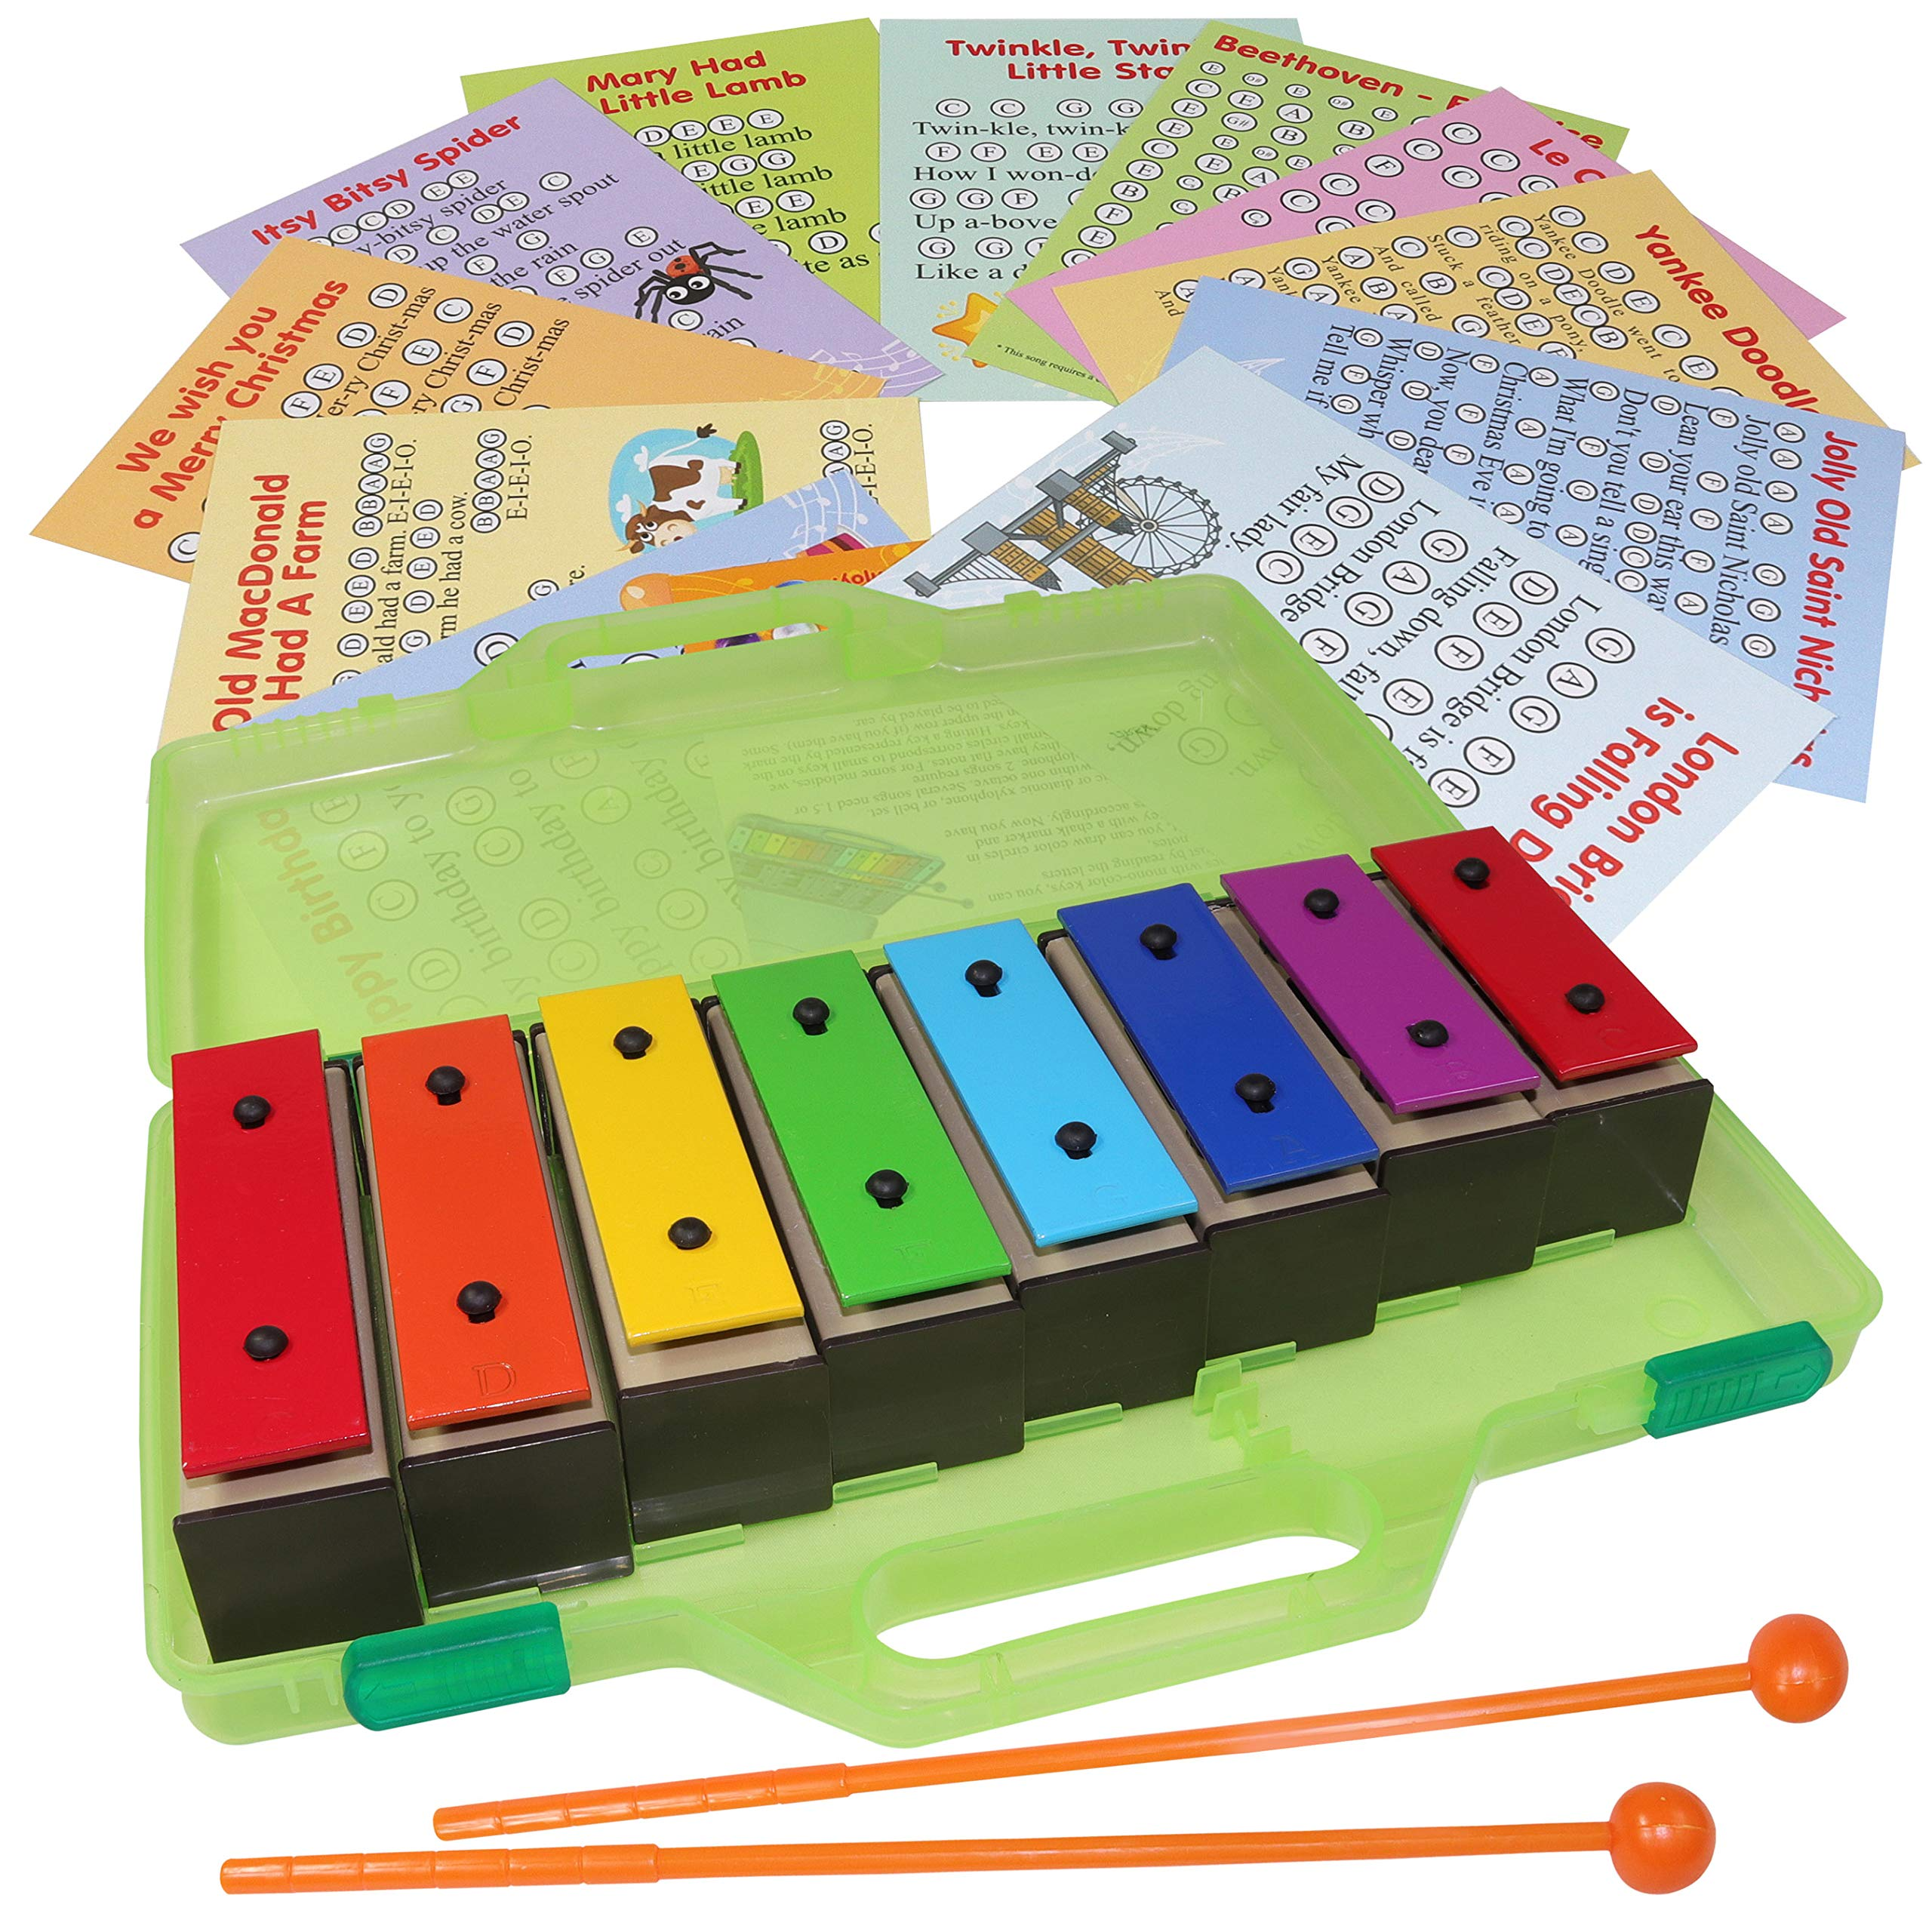 Chime Bar - Resonator Bells with Songs - Color Glockenspiel 8 Note Xylophone Kit - Song Cards by inTemenos